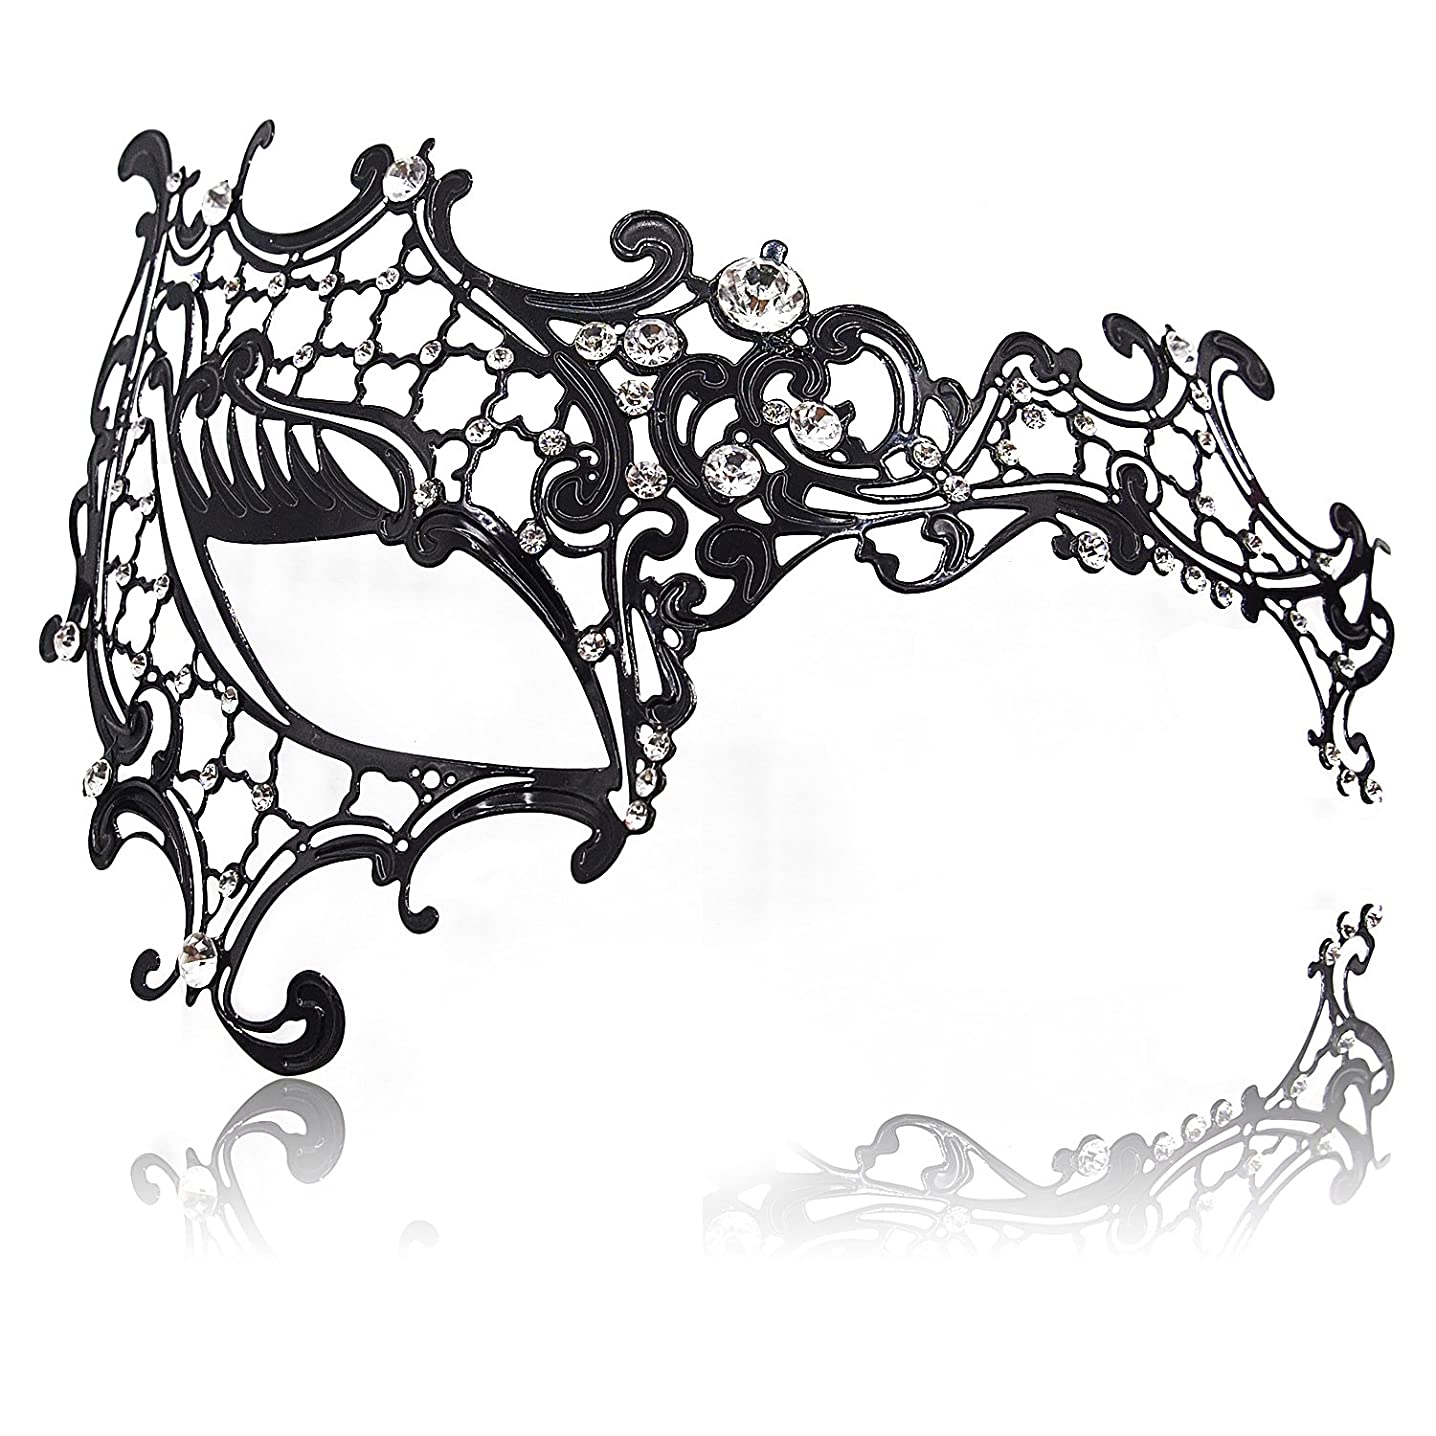 FaceWood Masquerade Mask for Women Ultralight Metal Mask Shiny Metal Rhinestone Venetian Pretty Party Evening Prom Ball Mask.